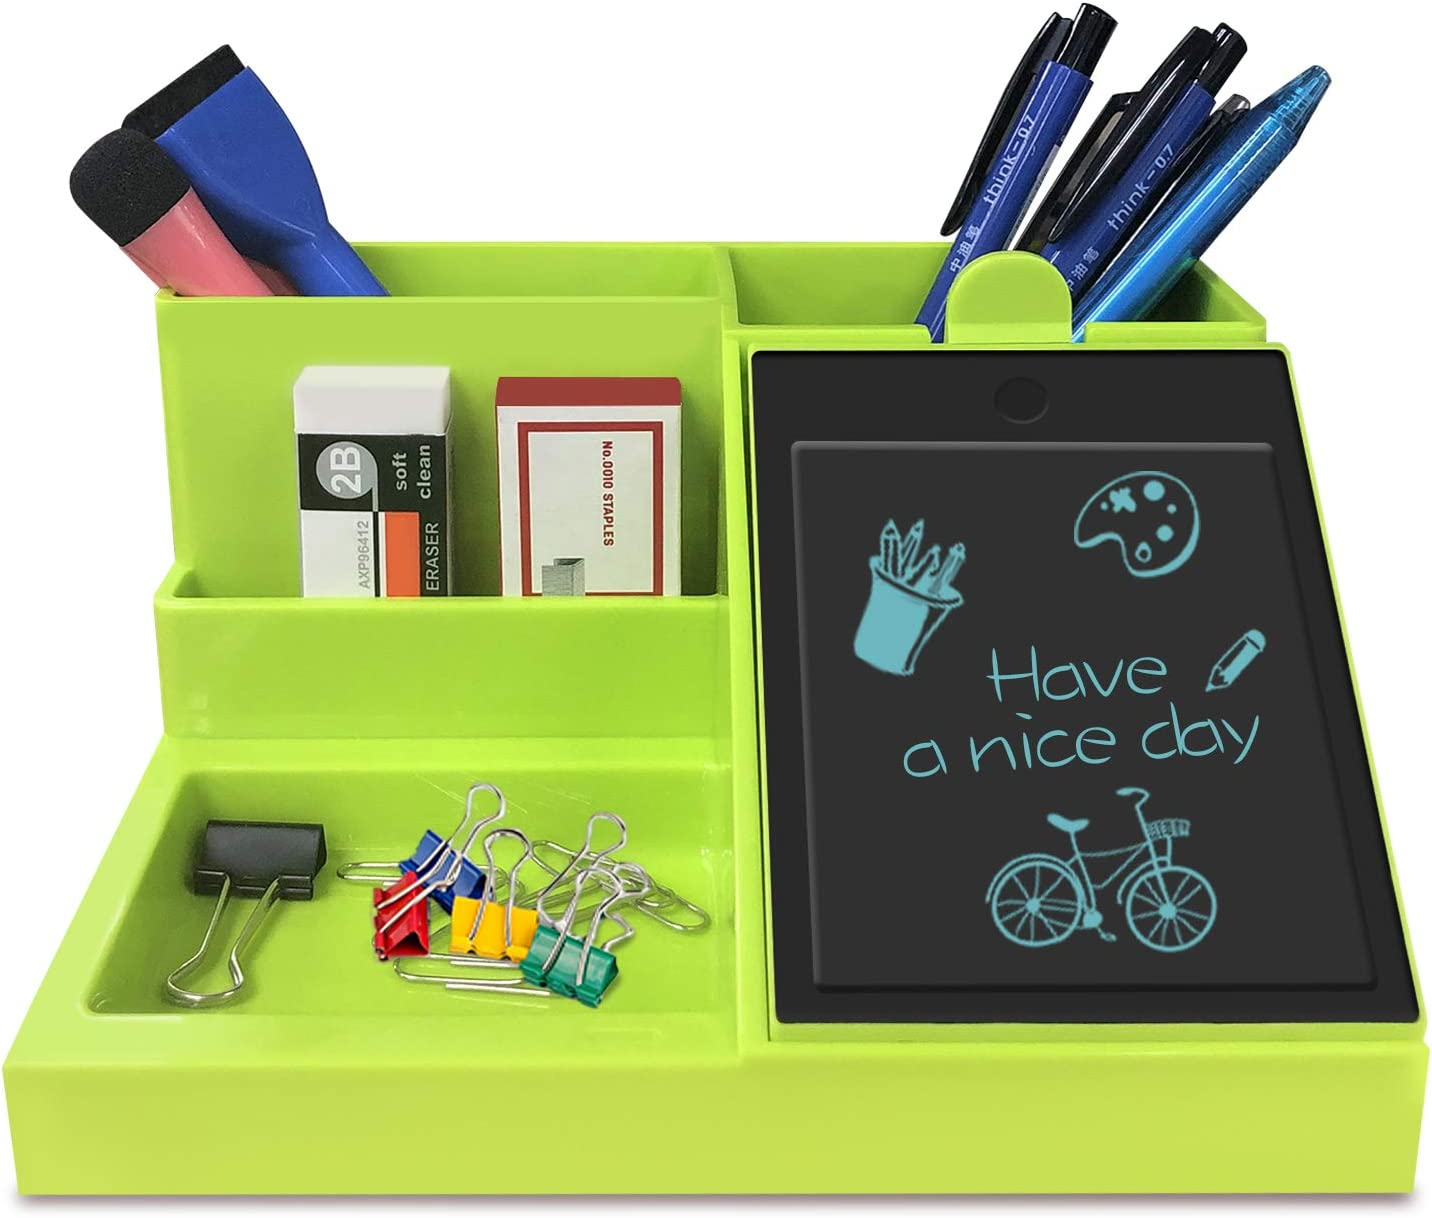 GUYUCOM Multifunctional Desktop Organizer with LCD Writing Tablet for Pen/Business Card/Mobile Phone/Office Supplies Storage-GREEN